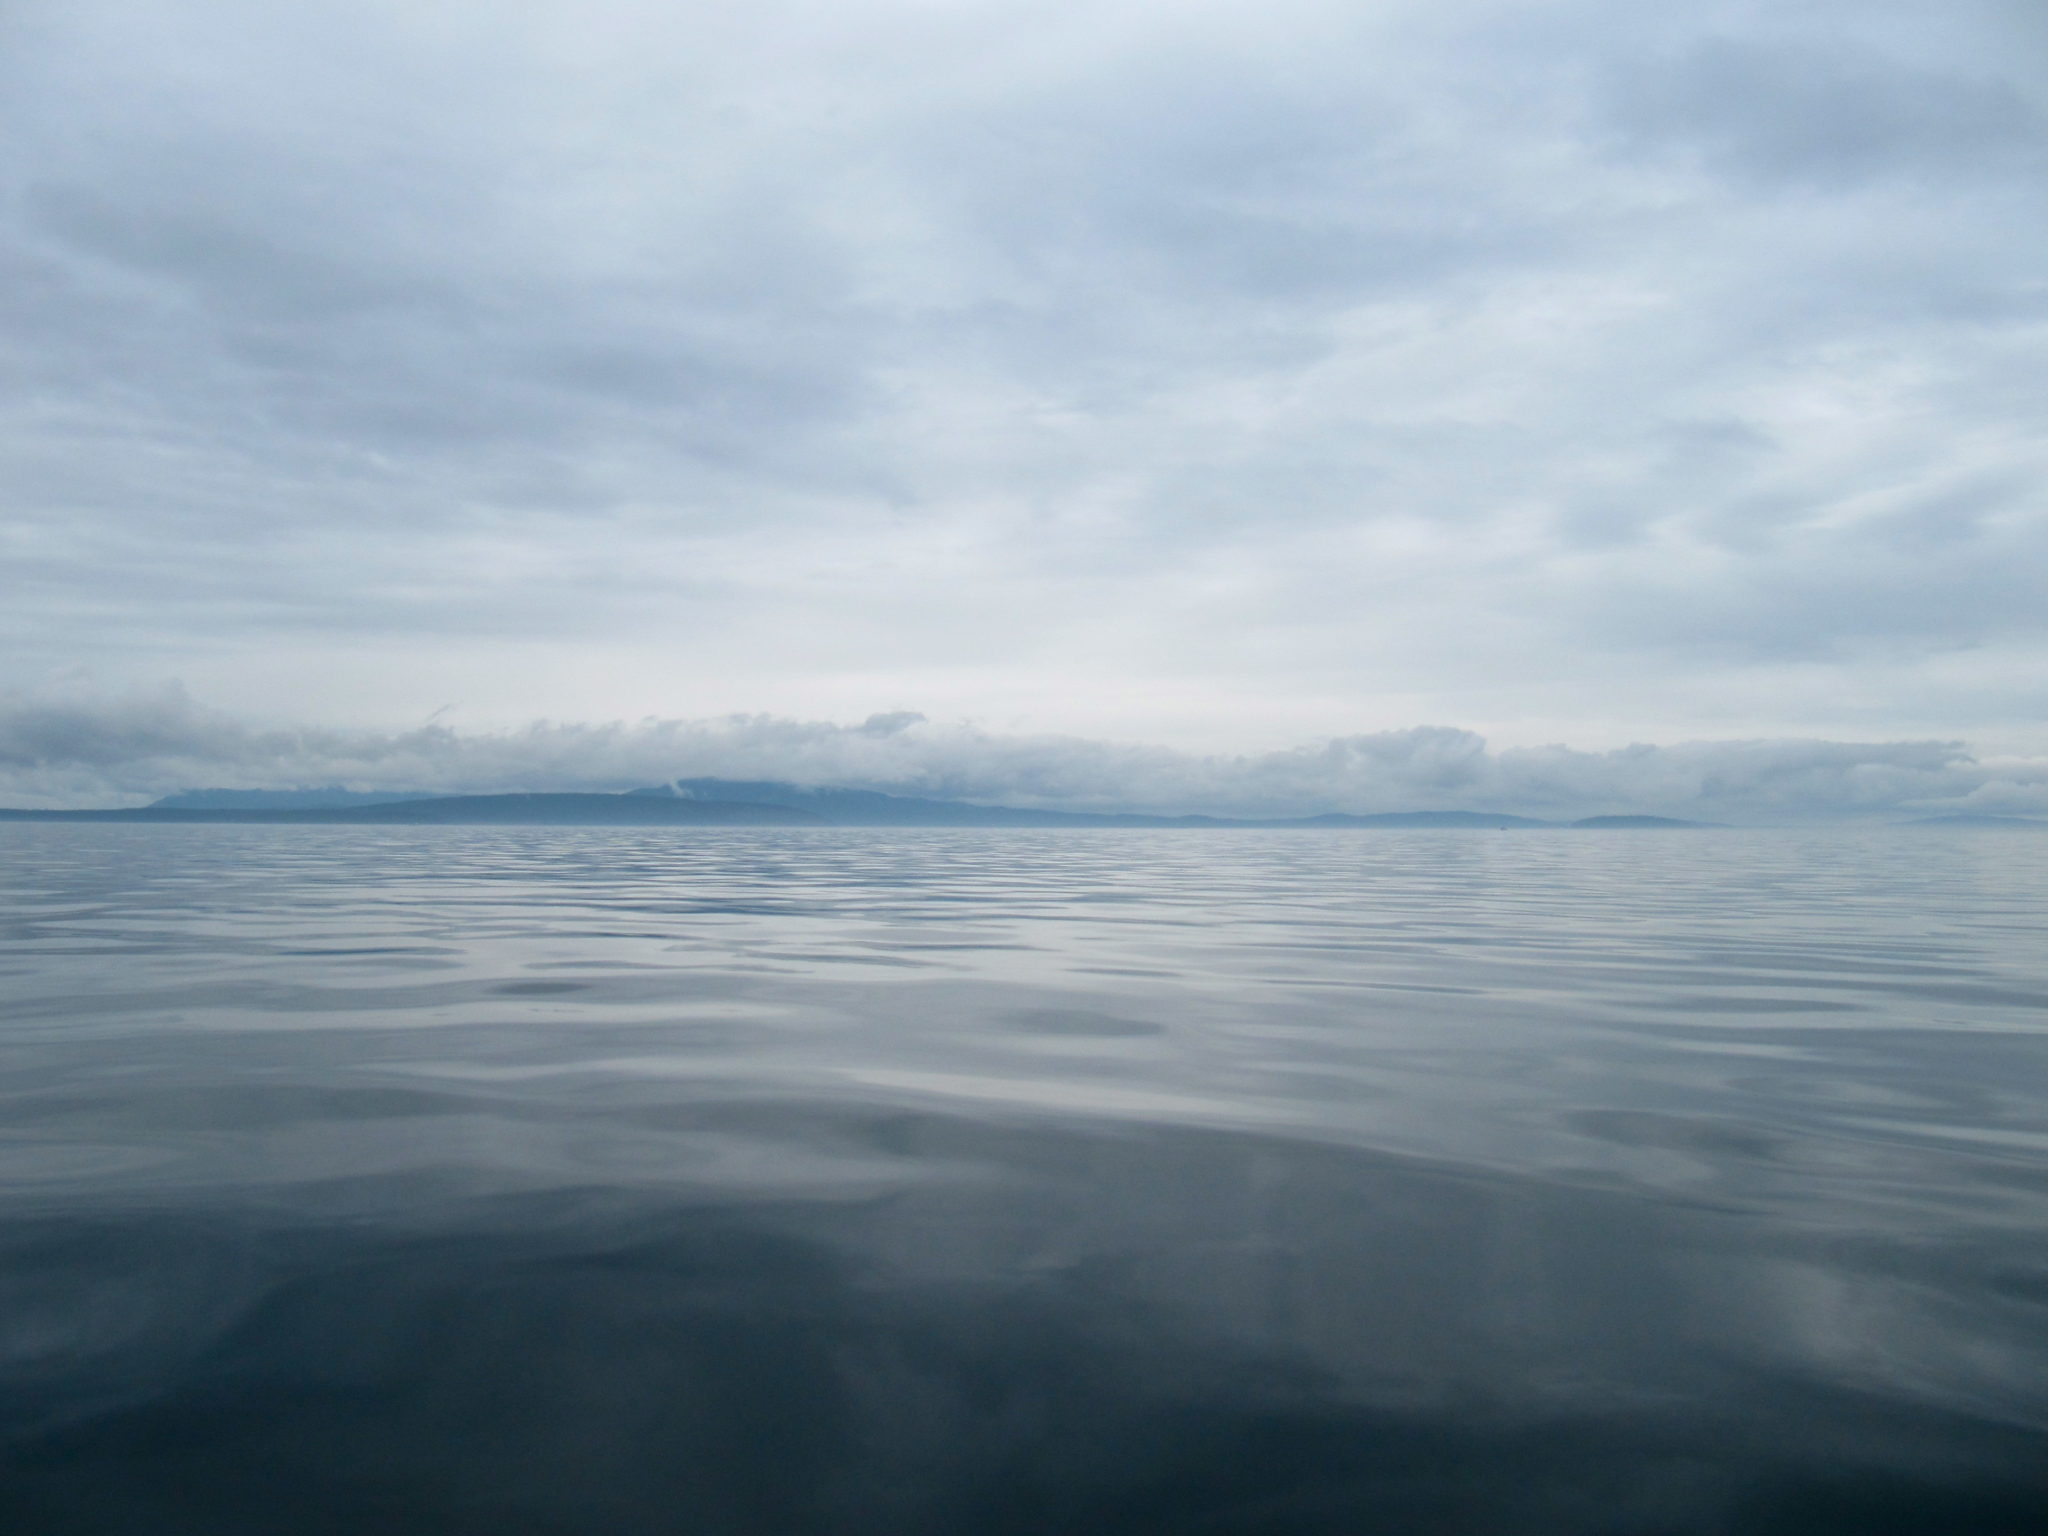 The eerily calm waters around the San Juan islands